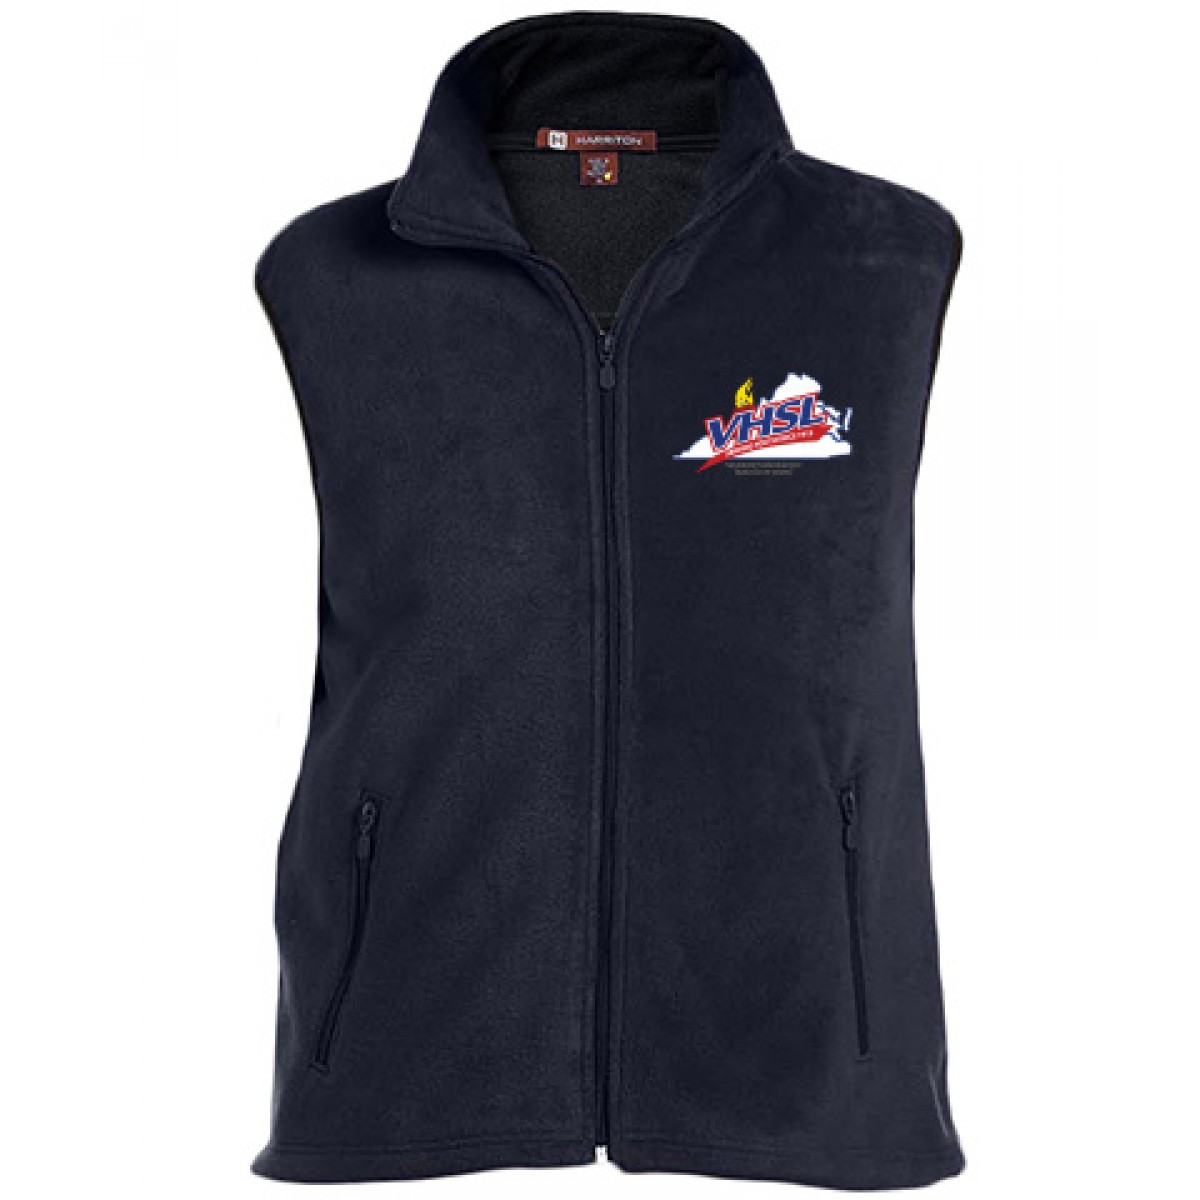 Embroidered Men's Vest